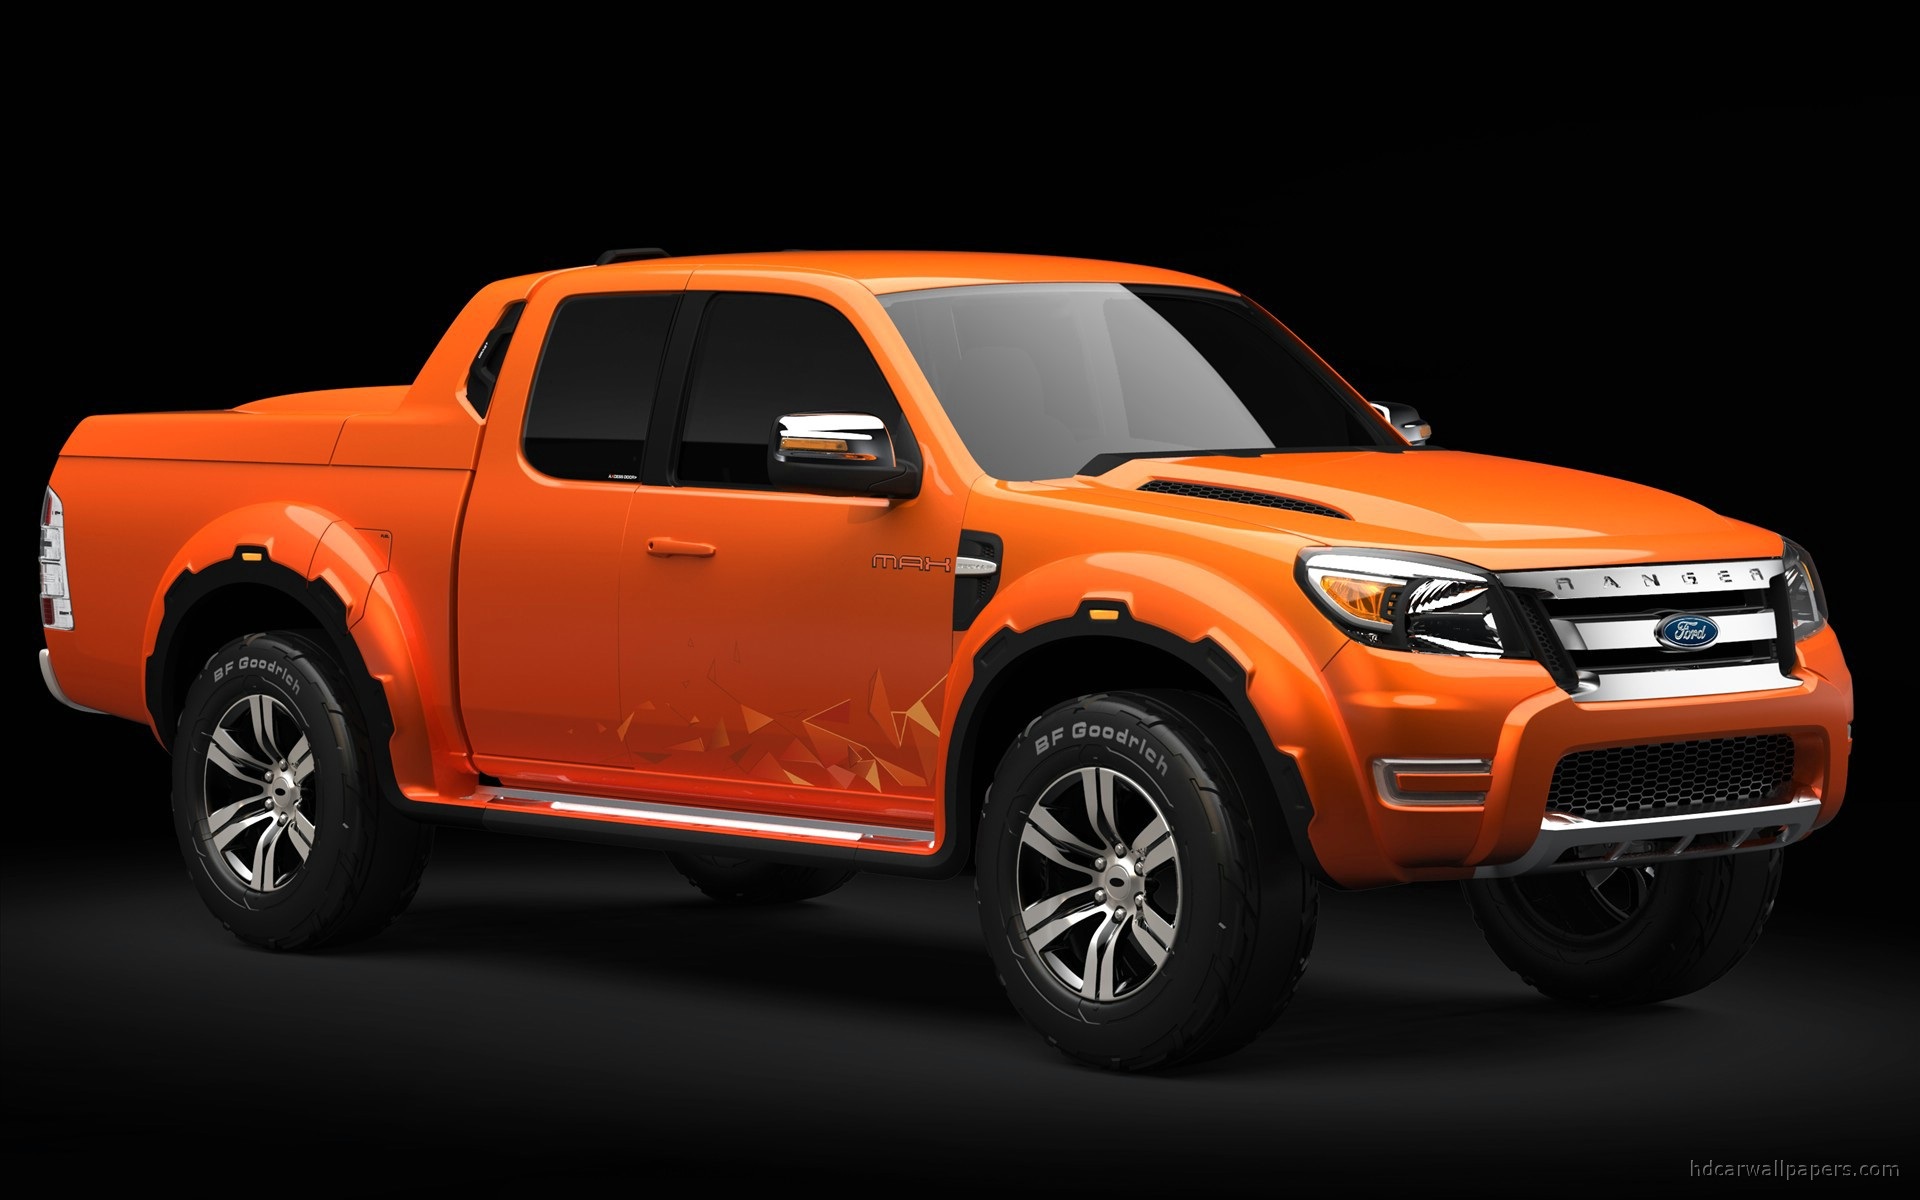 Ford Ranger Max Concept Desktop and mobile wallpaper Wallippo 1920x1200